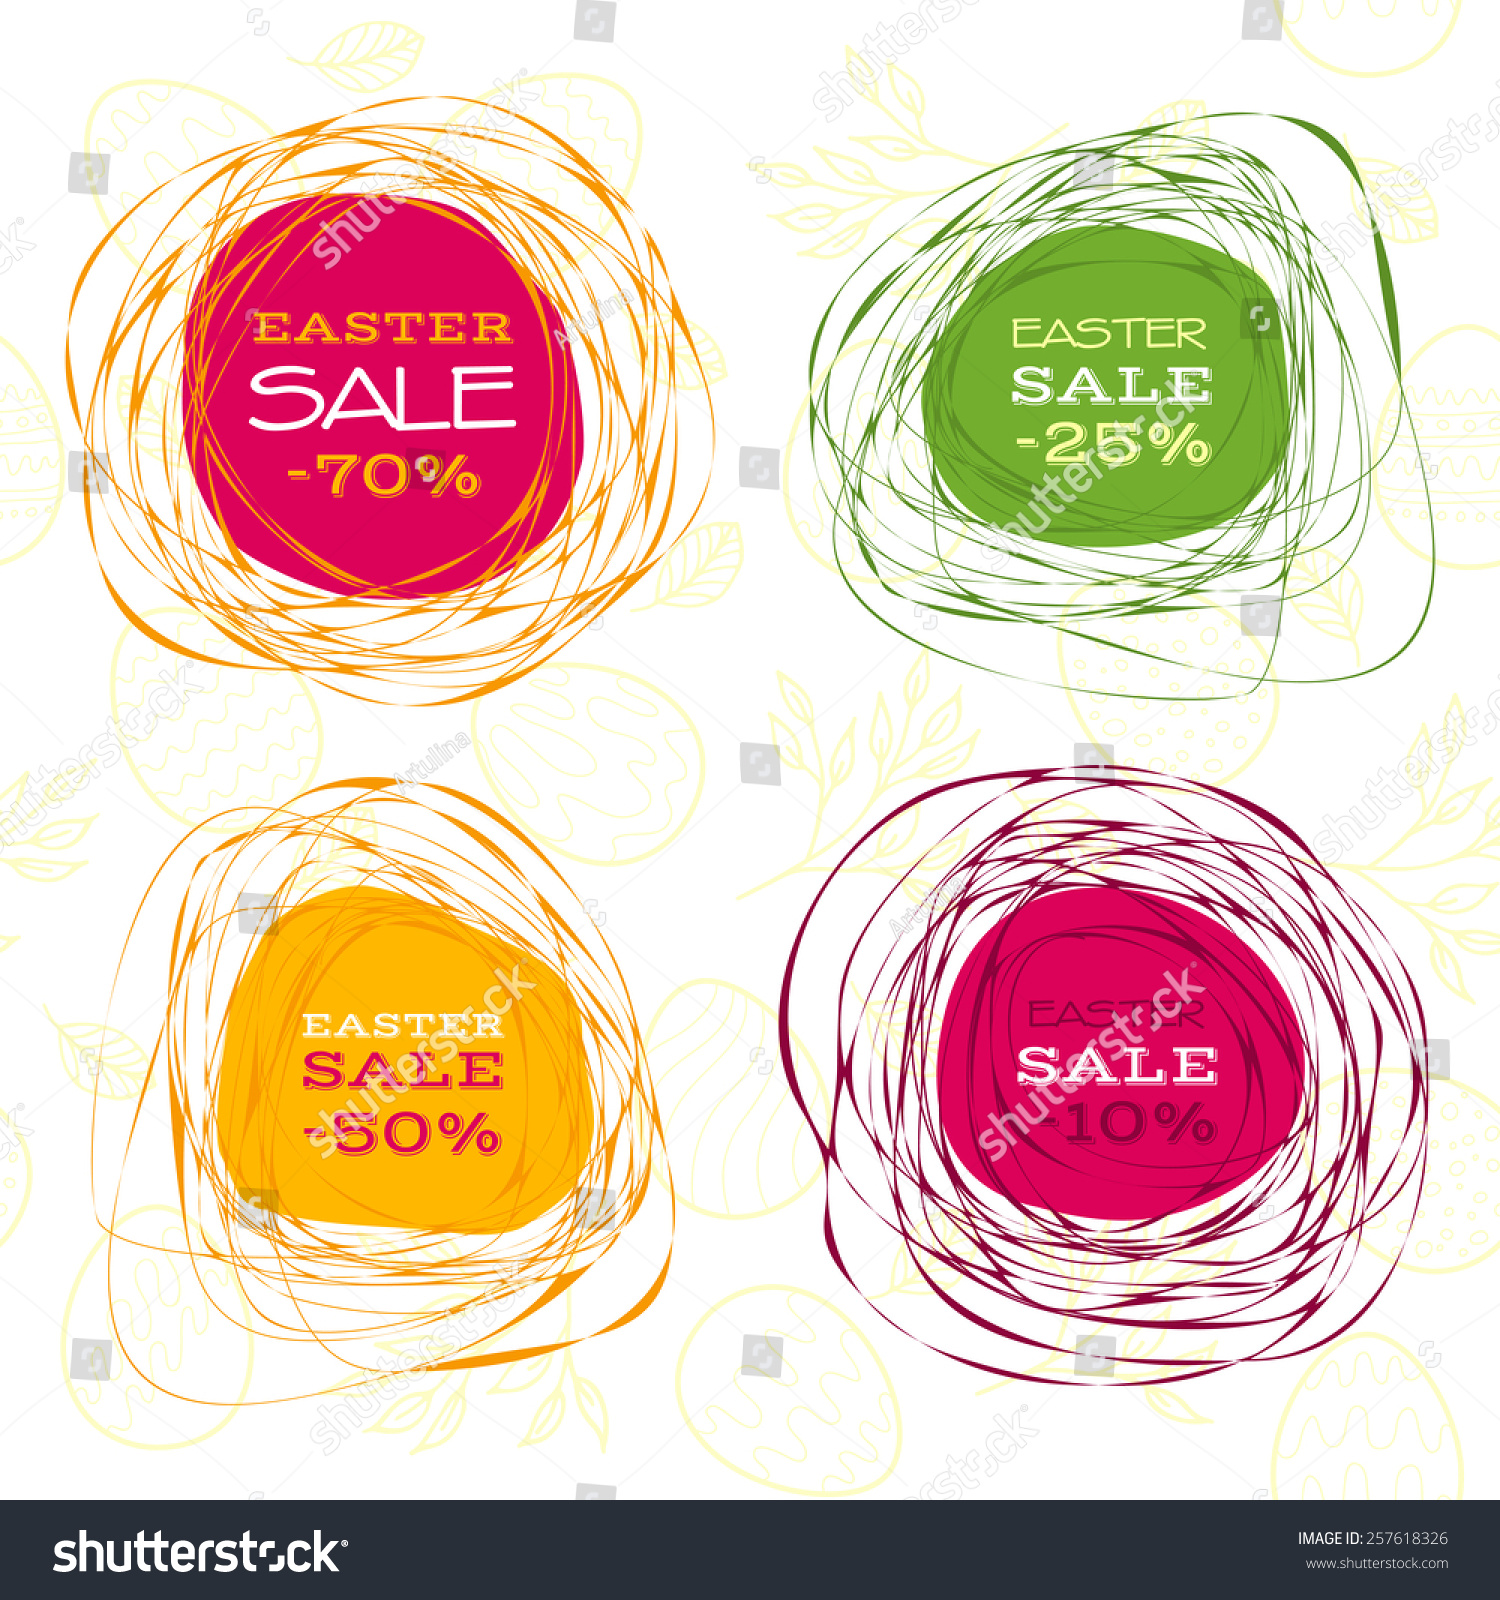 set of easter sale vector abstract frames - Easter Picture Frames